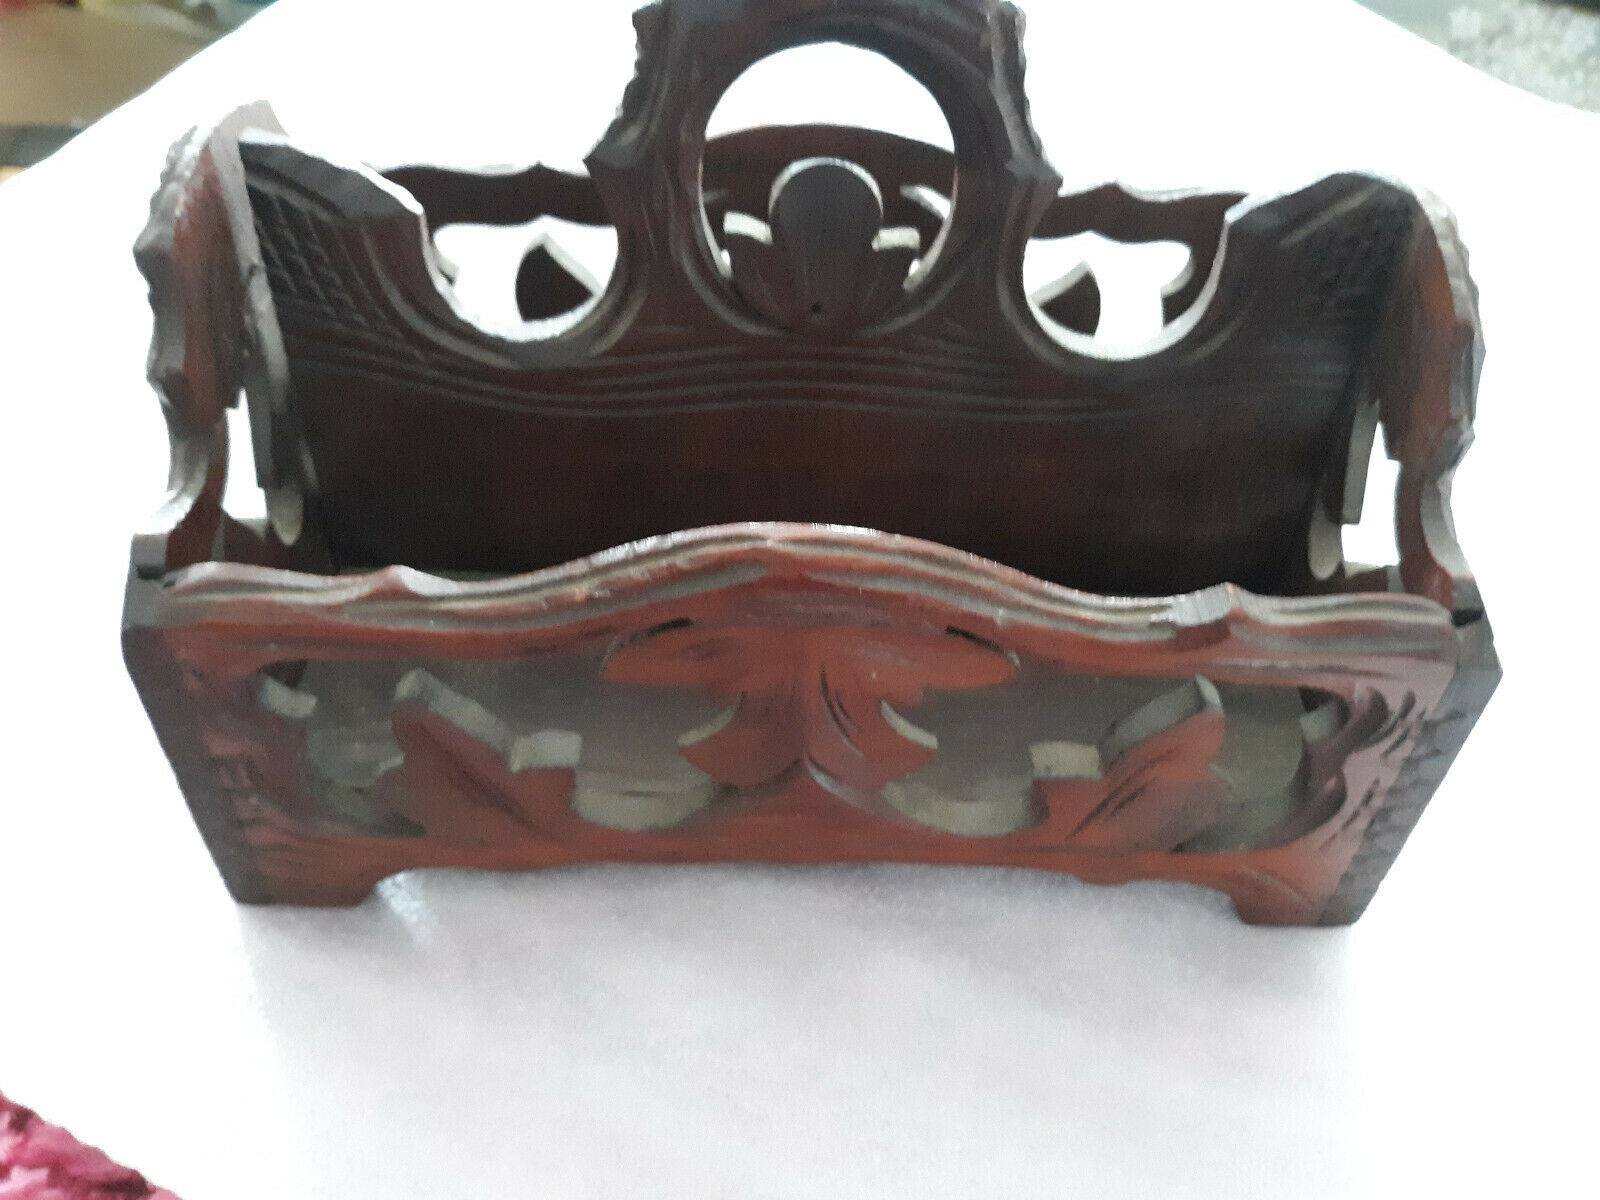 Vintage German Black Forest Wood Carved Desk Letter Pencil Holder Cutlery Tray - $149.00